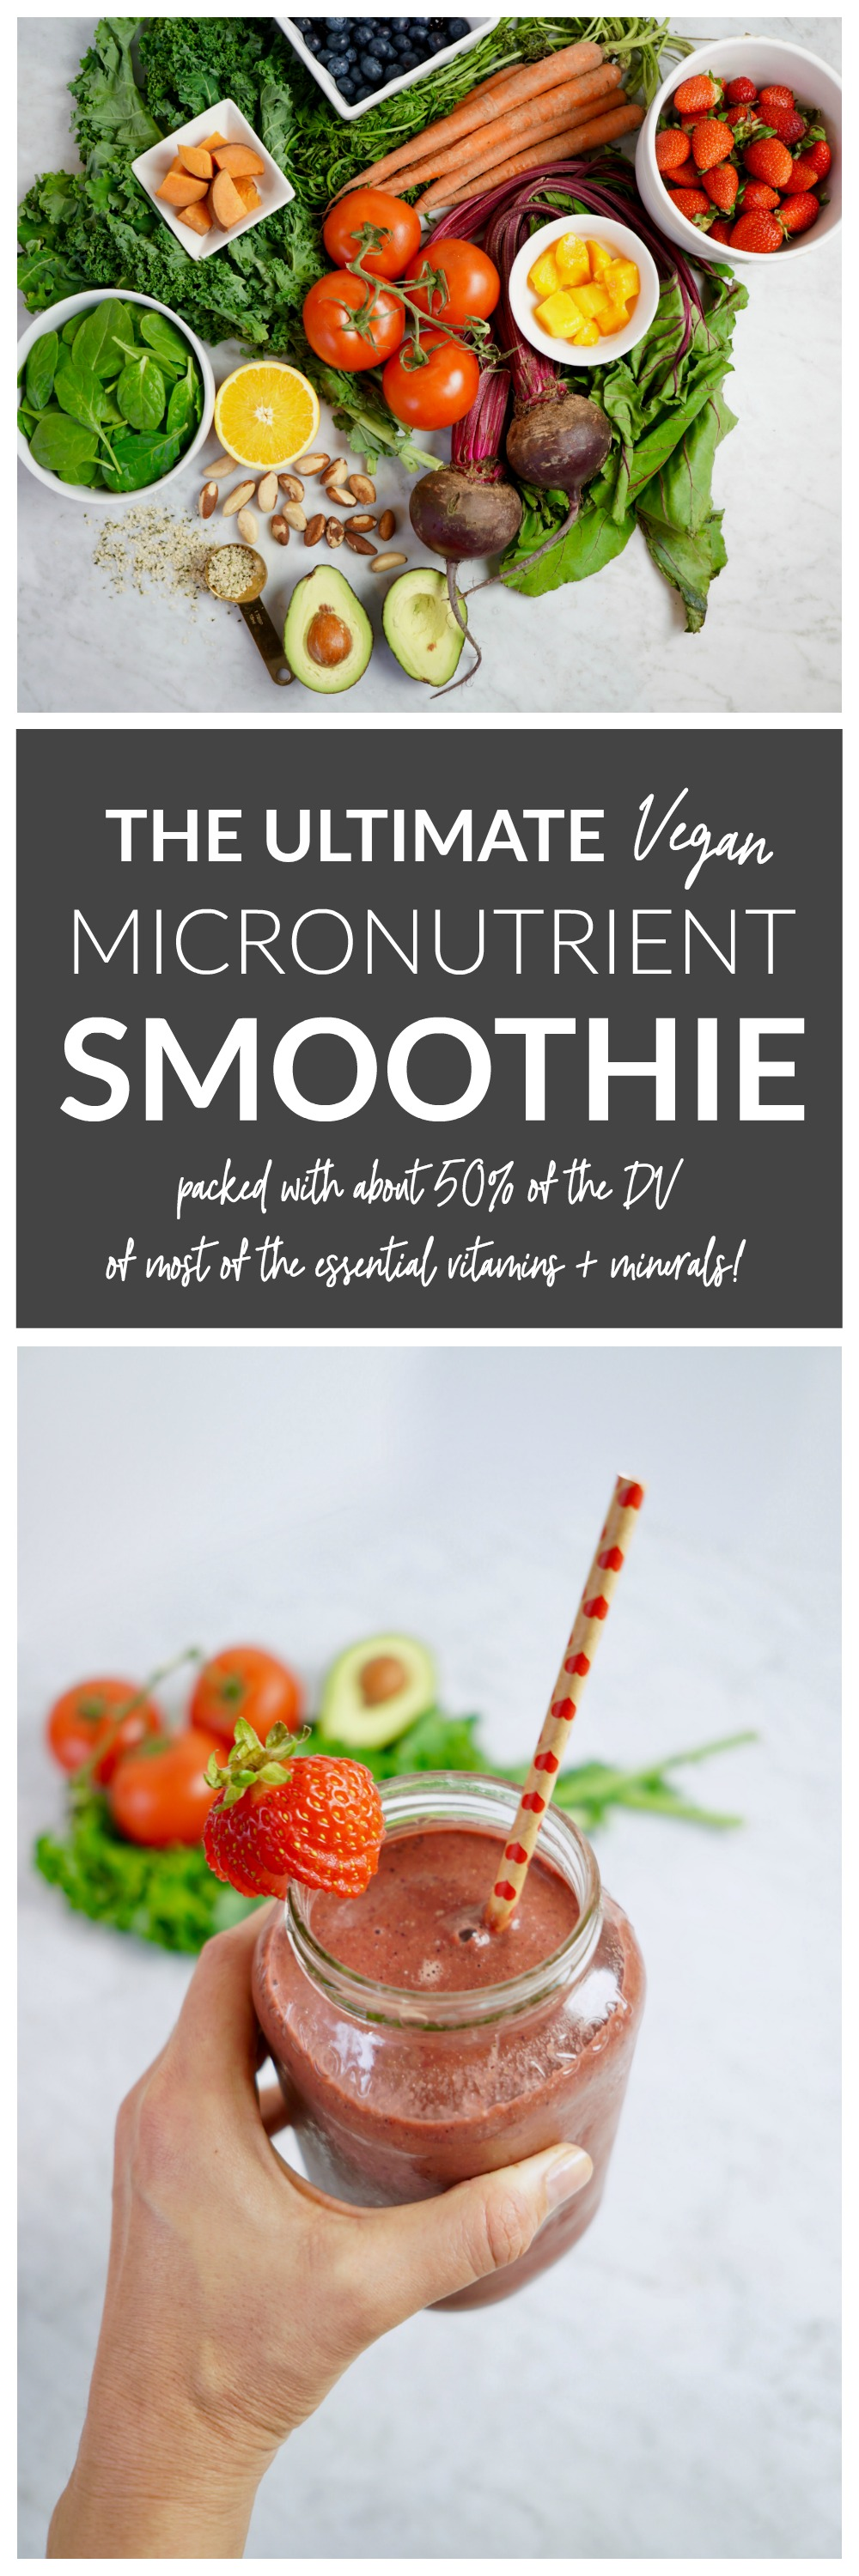 The Ultimate Vegan Micronutrient Smoothie